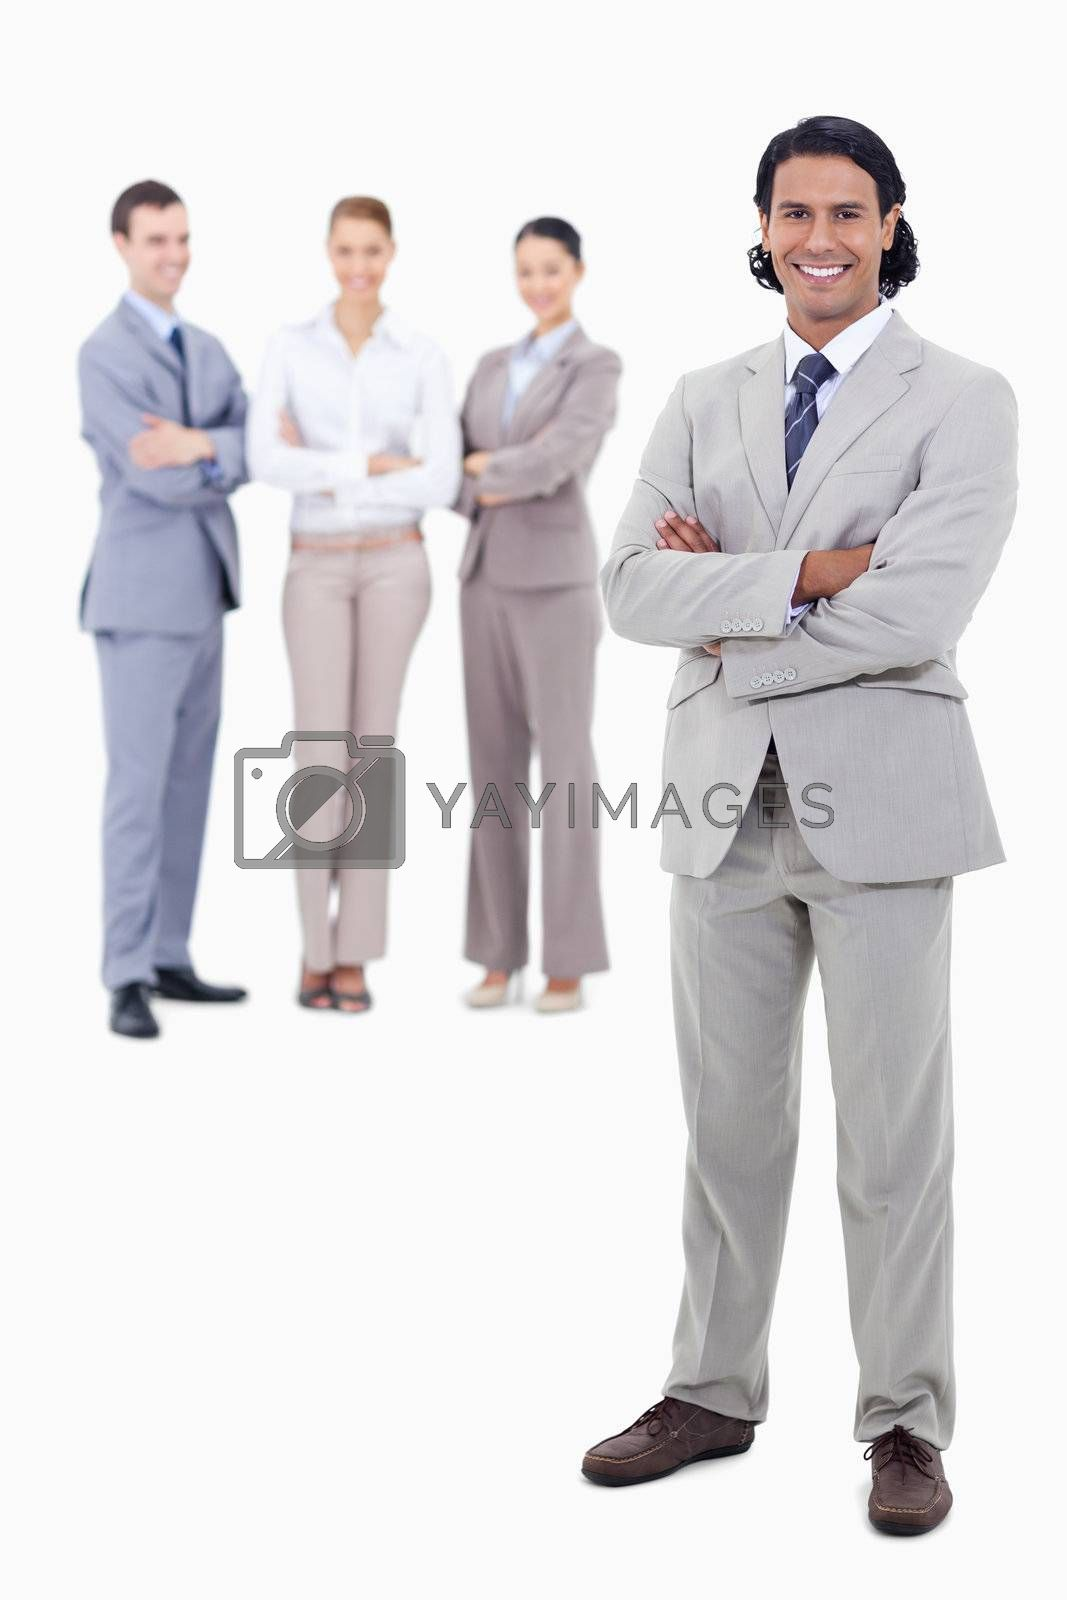 Businessman smiling and crossing his arms with happy people behind him against white background